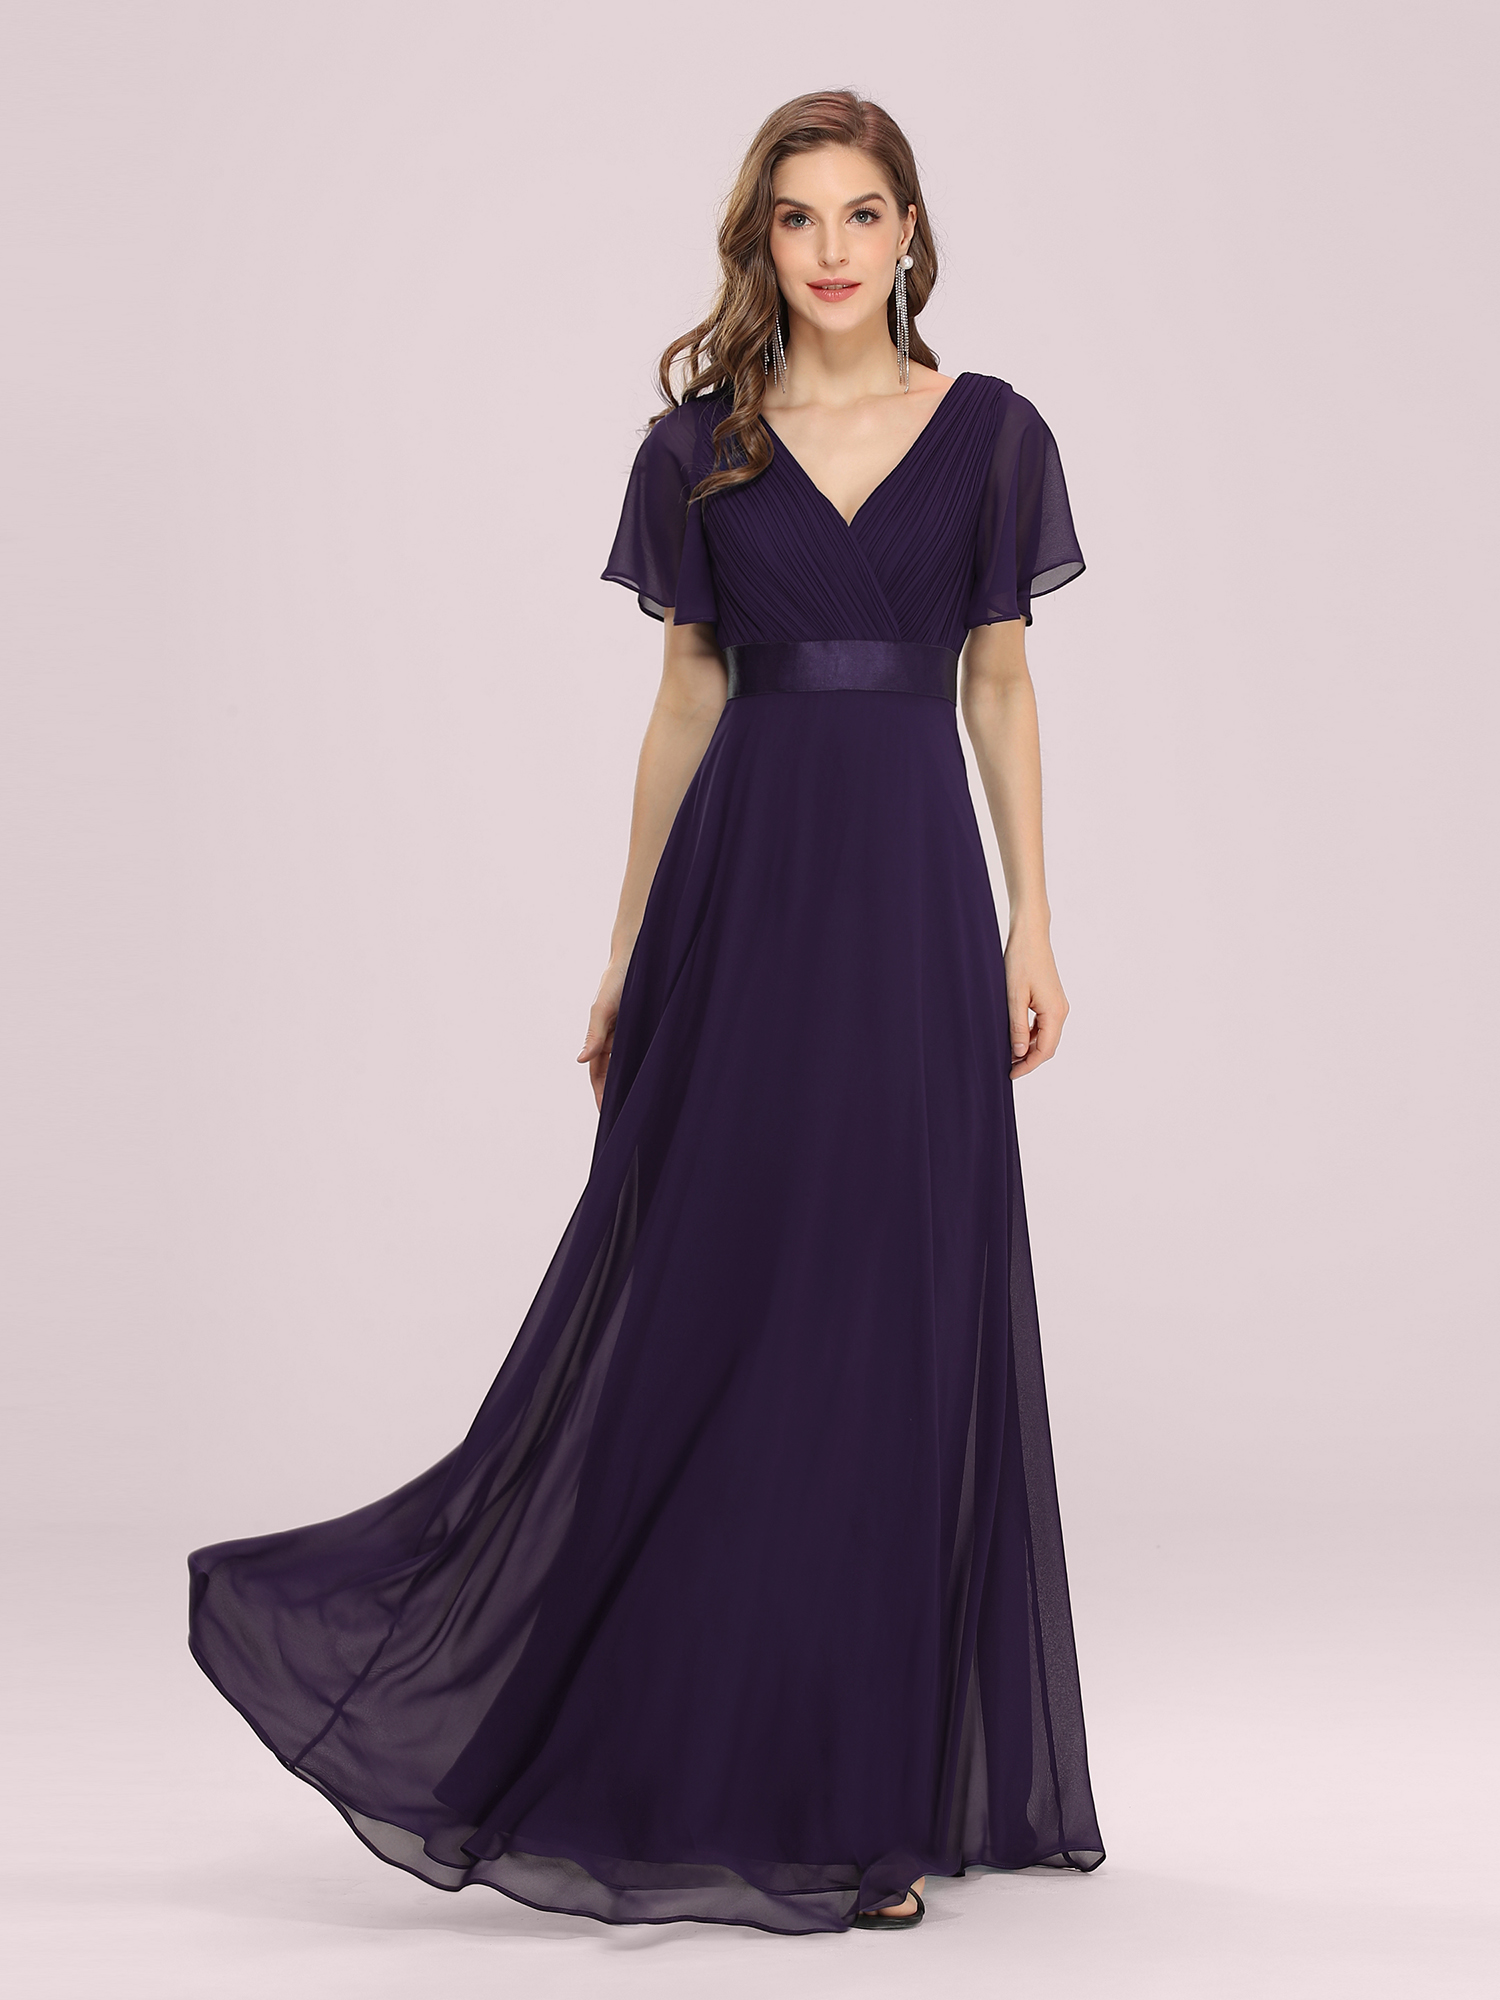 US Long Maxi Party Dresses Dark Purple Maternity Evening Gown 09890 ...